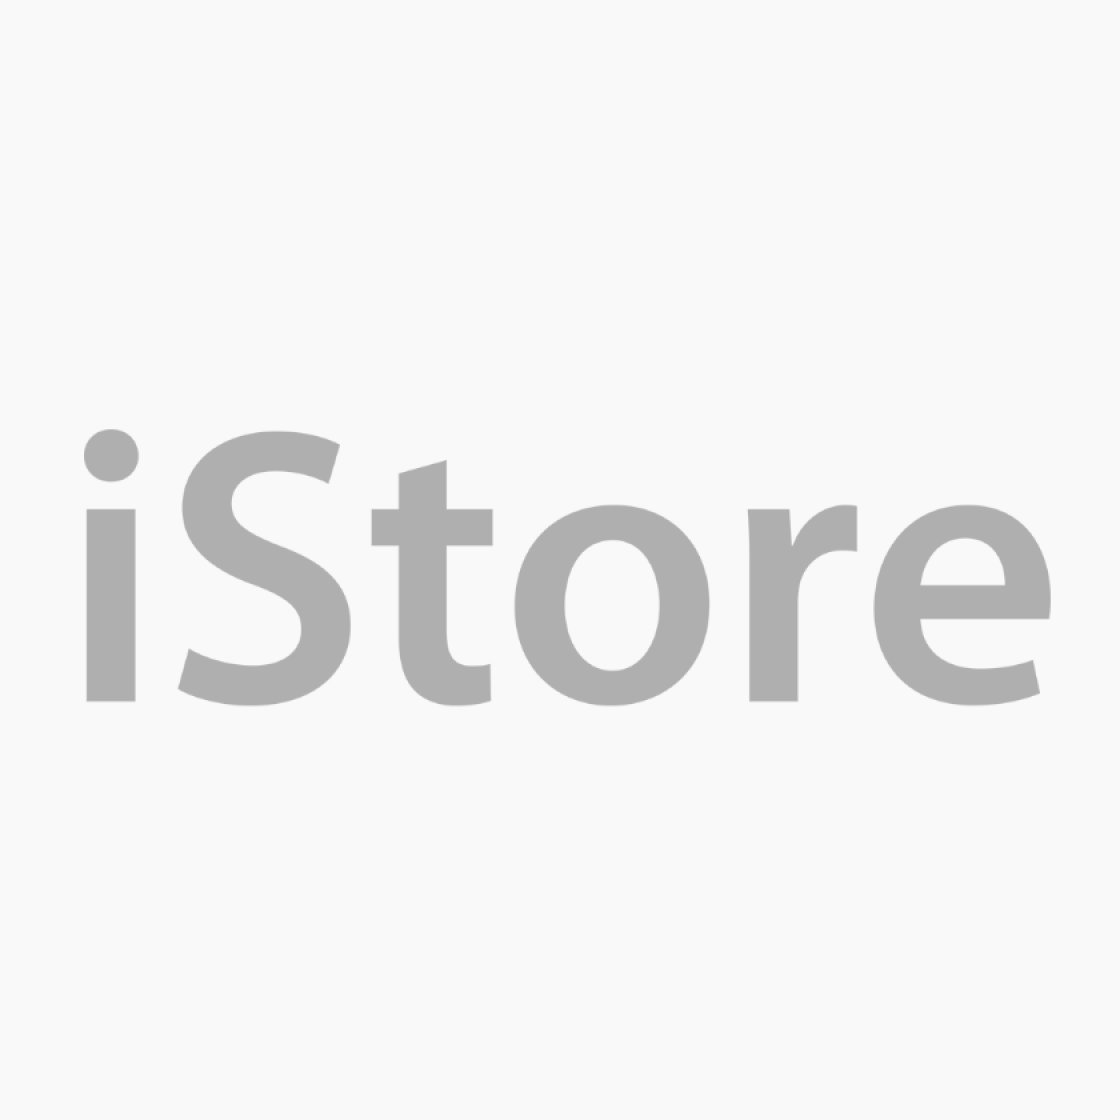 Apple iMac Pro 27 - Xeon W, 8-Core, 3.2GHz, 32GB, 1TB, Vega56